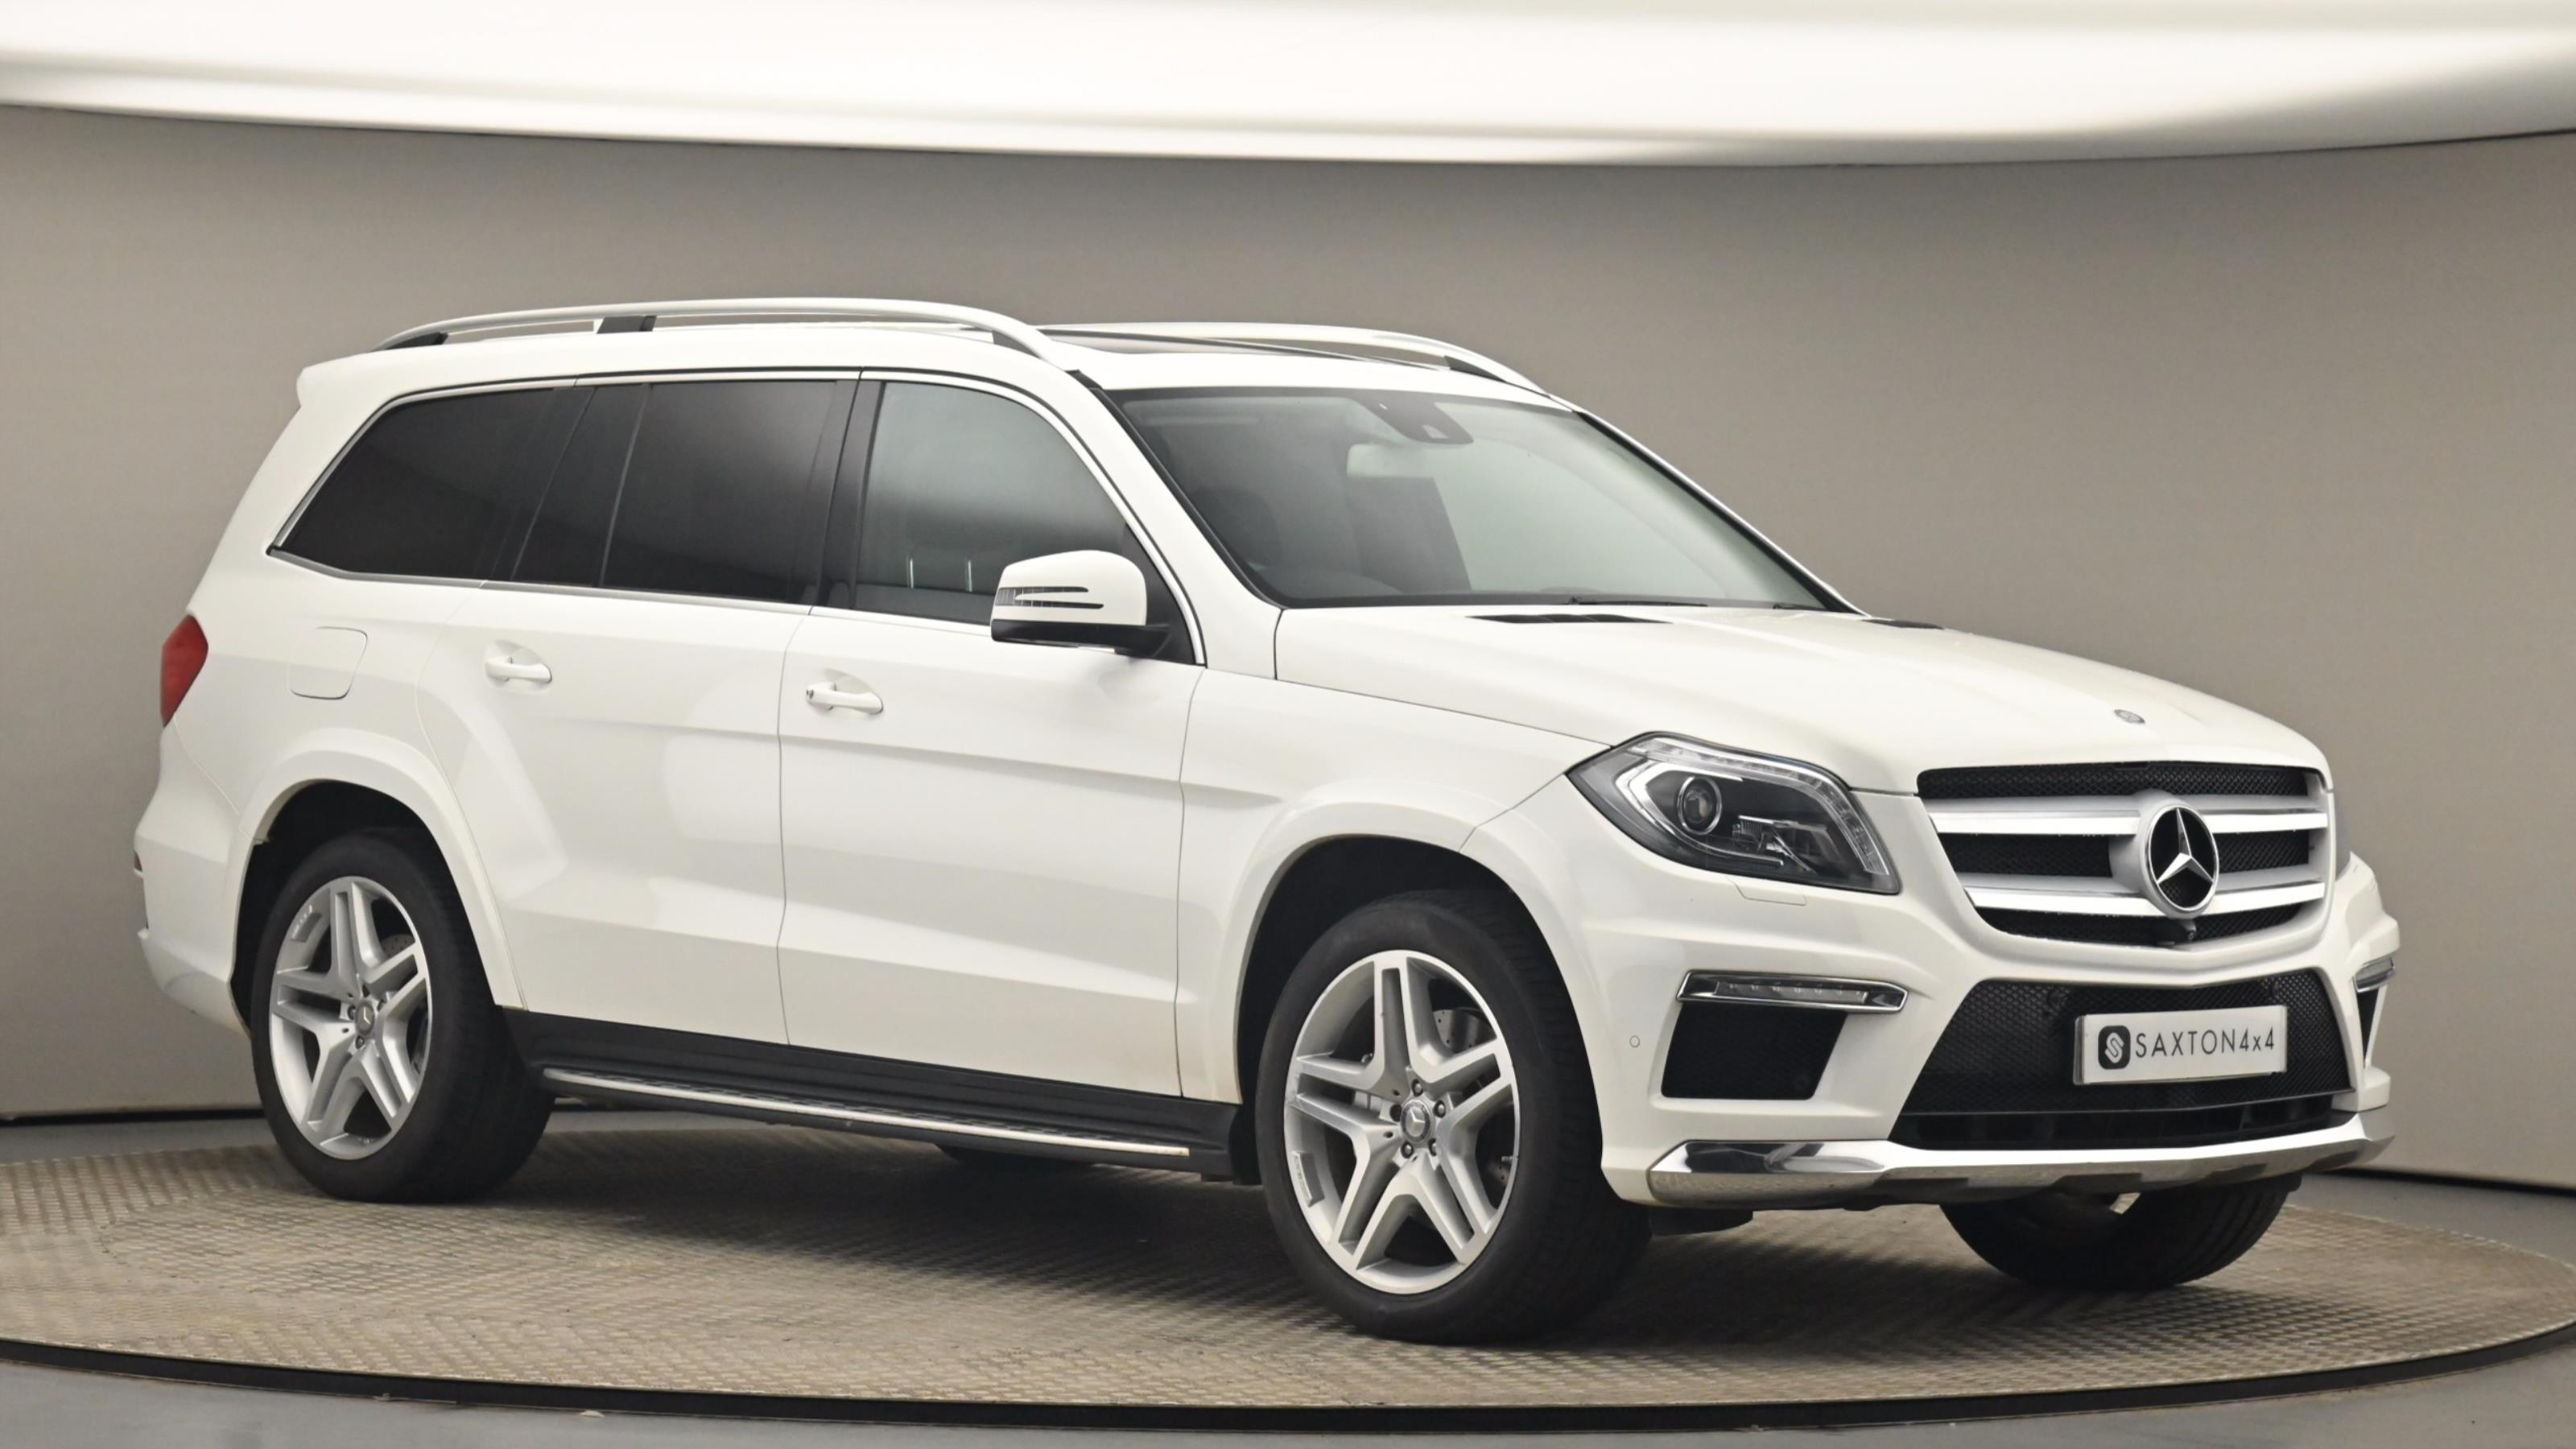 Used 2015 Mercedes-Benz GL CLASS GL350 BlueTEC AMG Sport 5dr Tip Auto WHITE at Saxton4x4